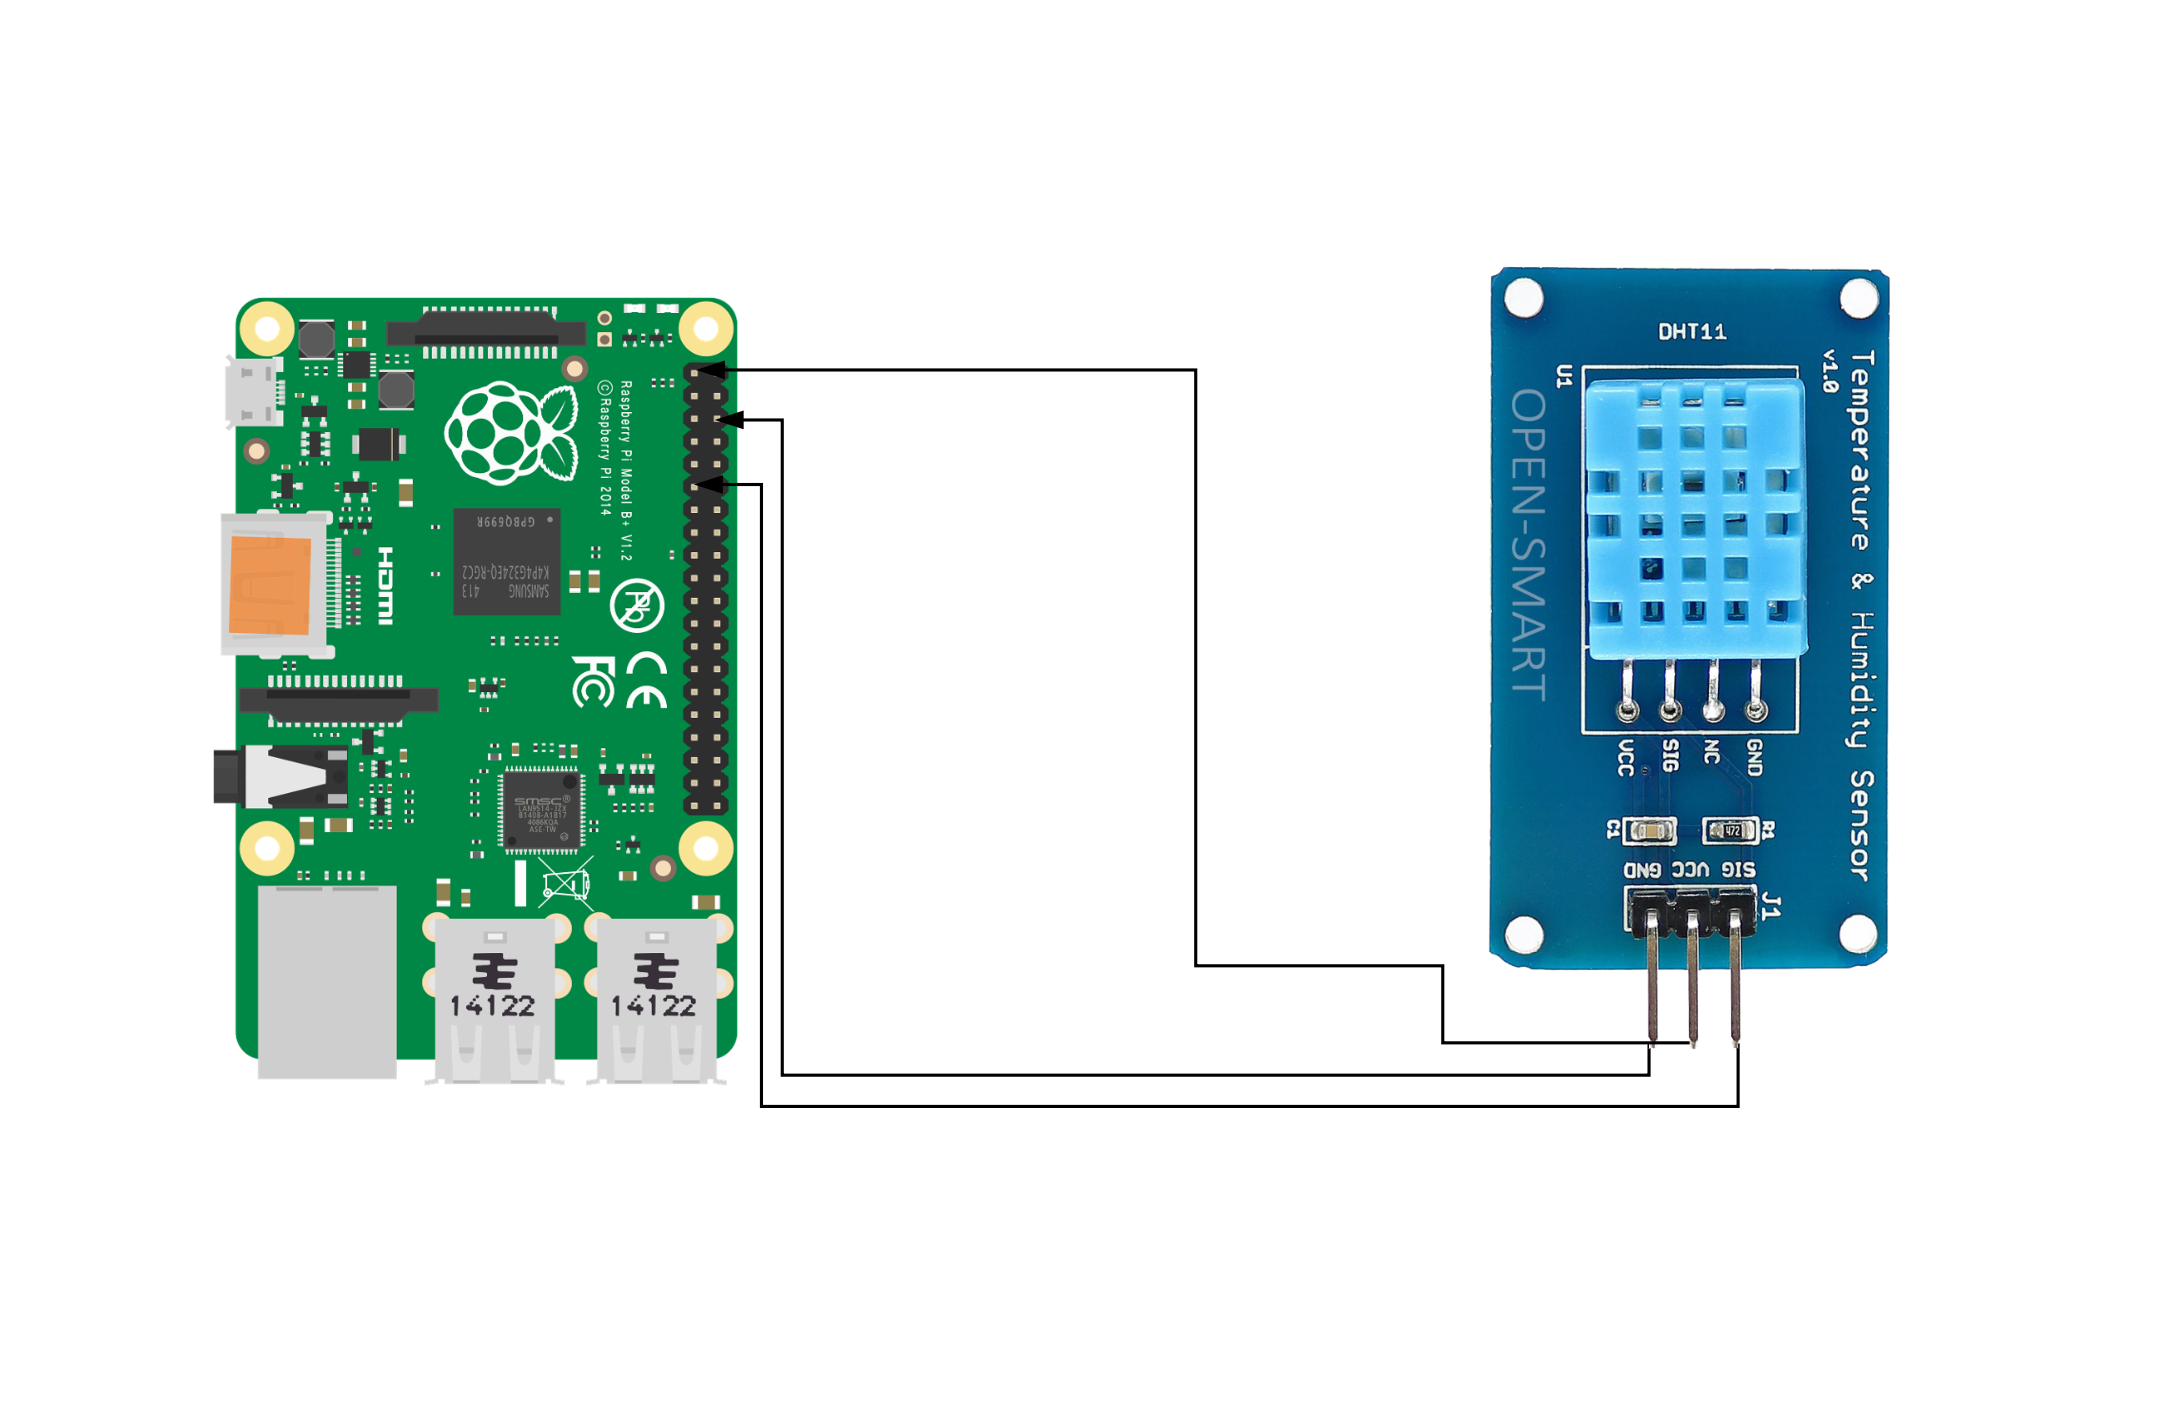 Terrific How To Setup Dht11 Humidity Temperature Sensor On Raspberry Pi Wiring Digital Resources Indicompassionincorg